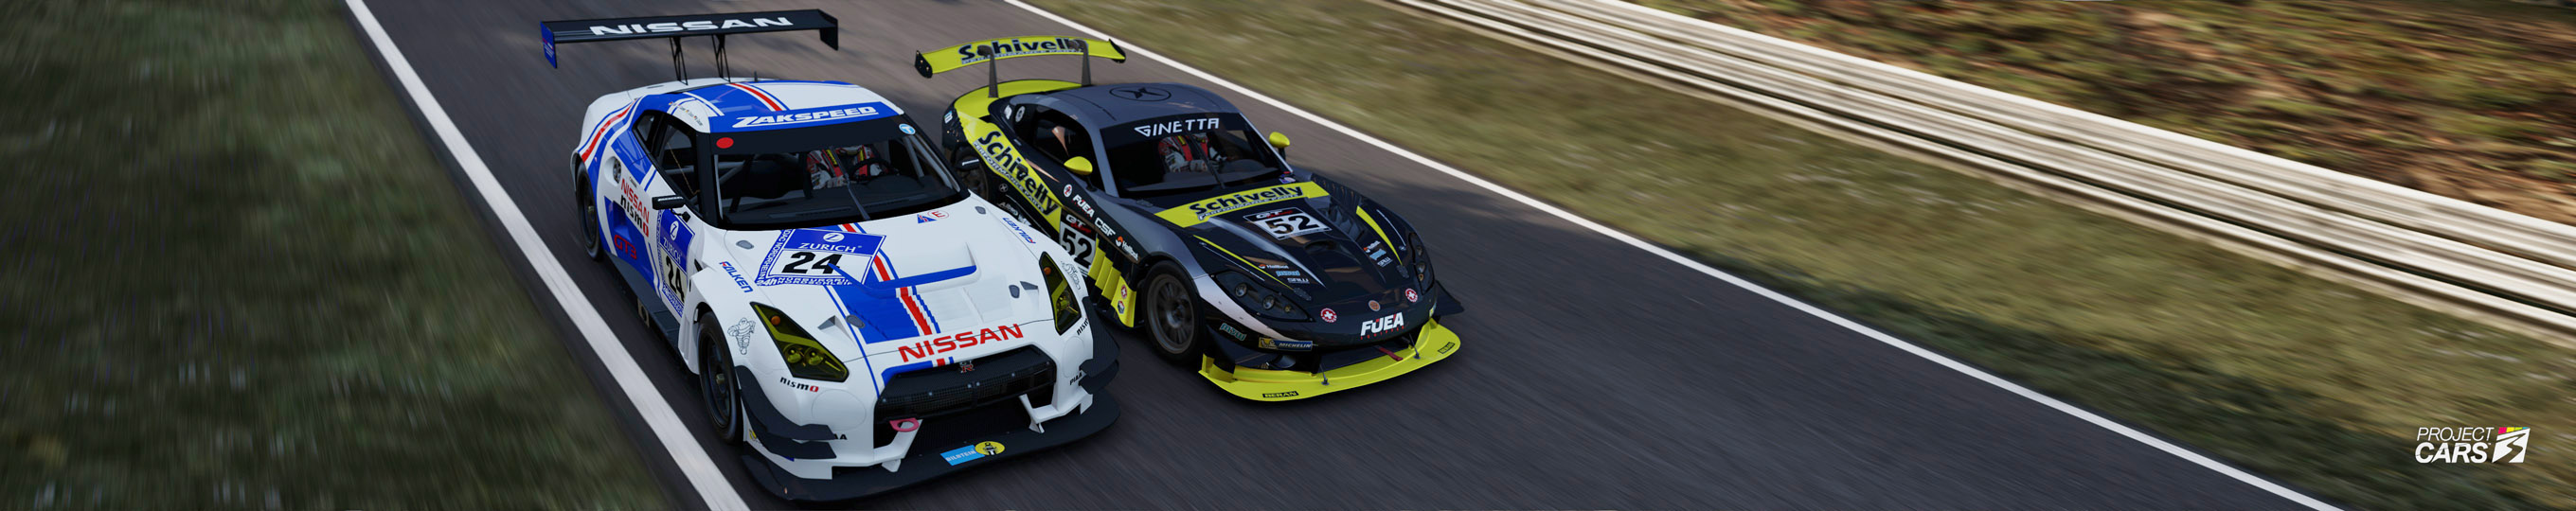 7 PROJECT CARS 3 GT3 at NORDSCHLEIFE crop copy.jpg